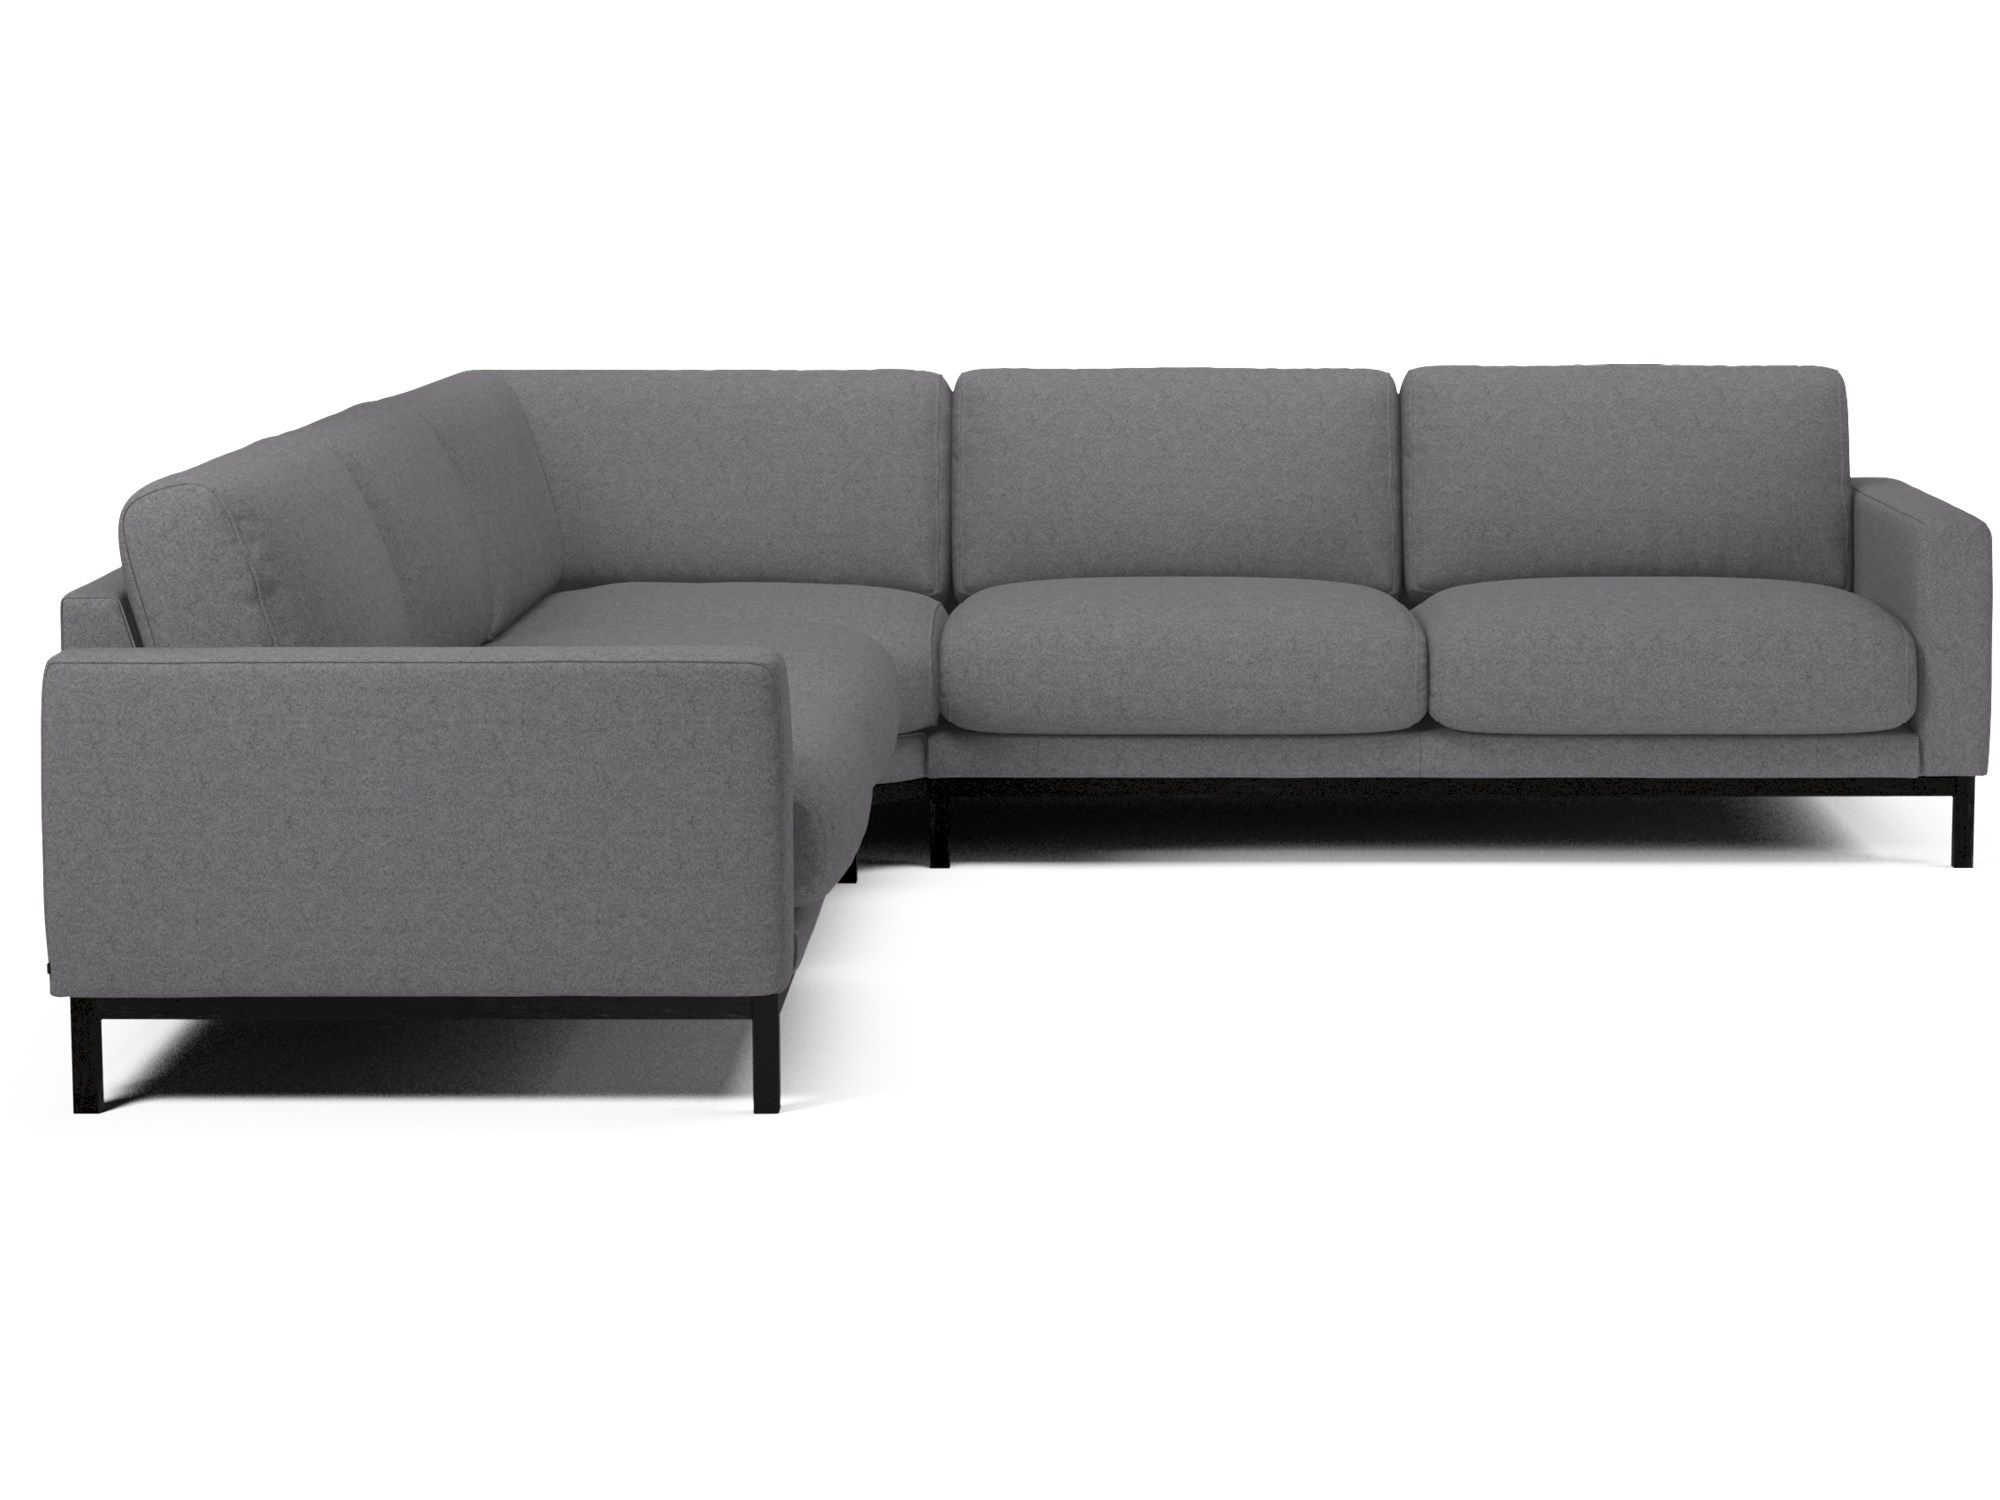 Smart Ecksofa Anna Milner Left Corner Storage Sofa Bed With Memory Foam Mattress